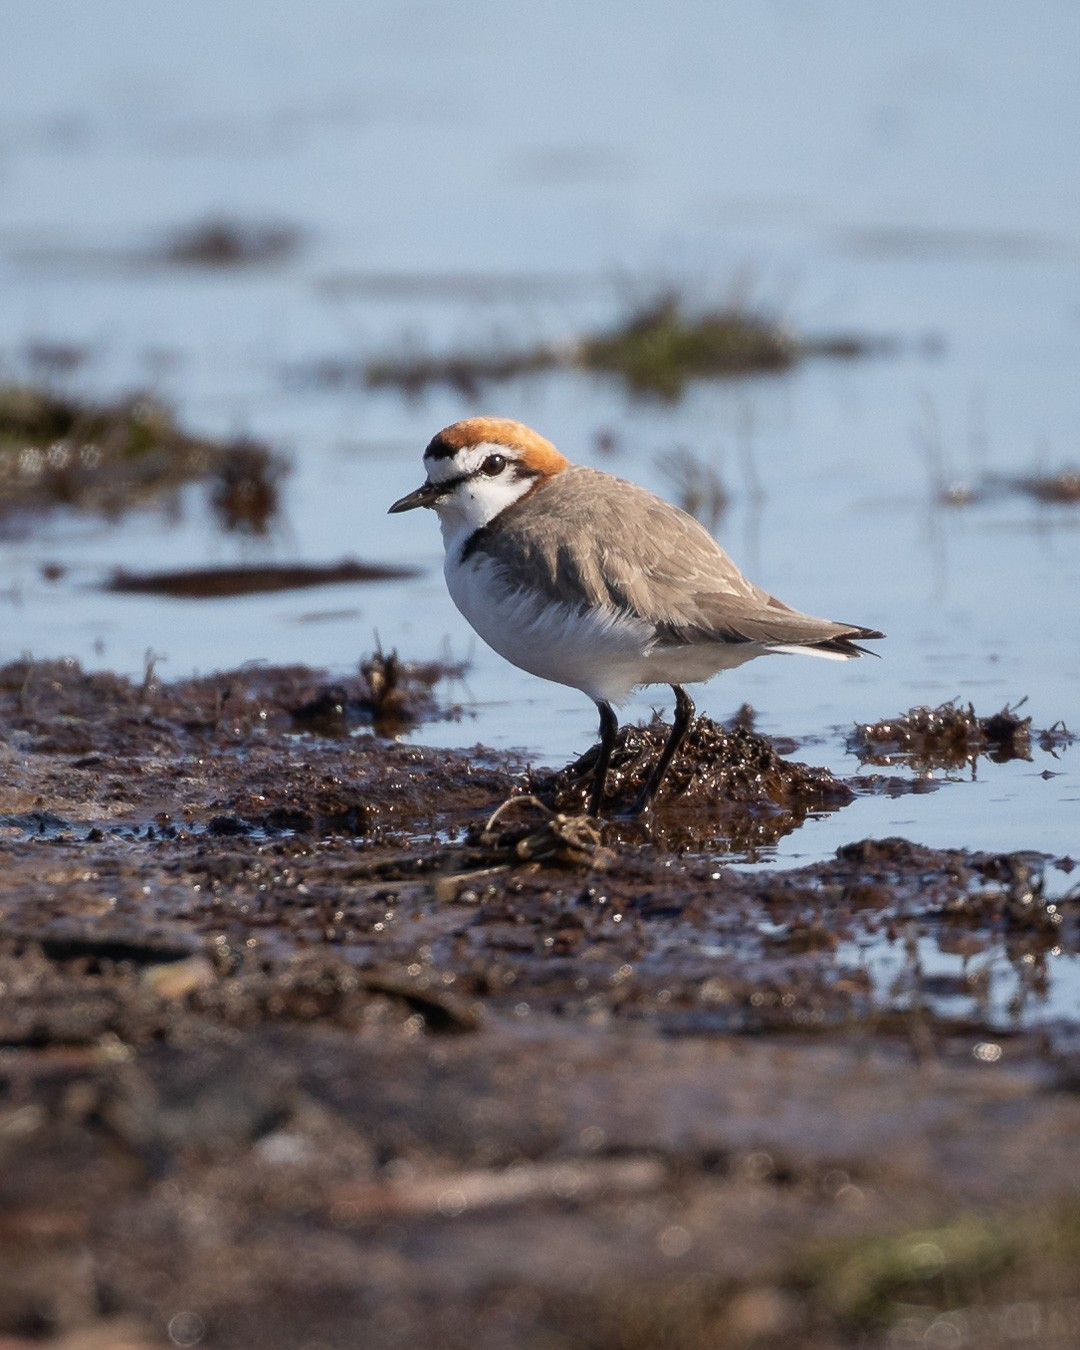 A few years ago I (Coreena) was hiking with Roy on Bruny Island and during that walk I was excited to record a 'lifer'... that is my (personal) first ever sighting of a Red-capped Plover. What an adorable little bird!